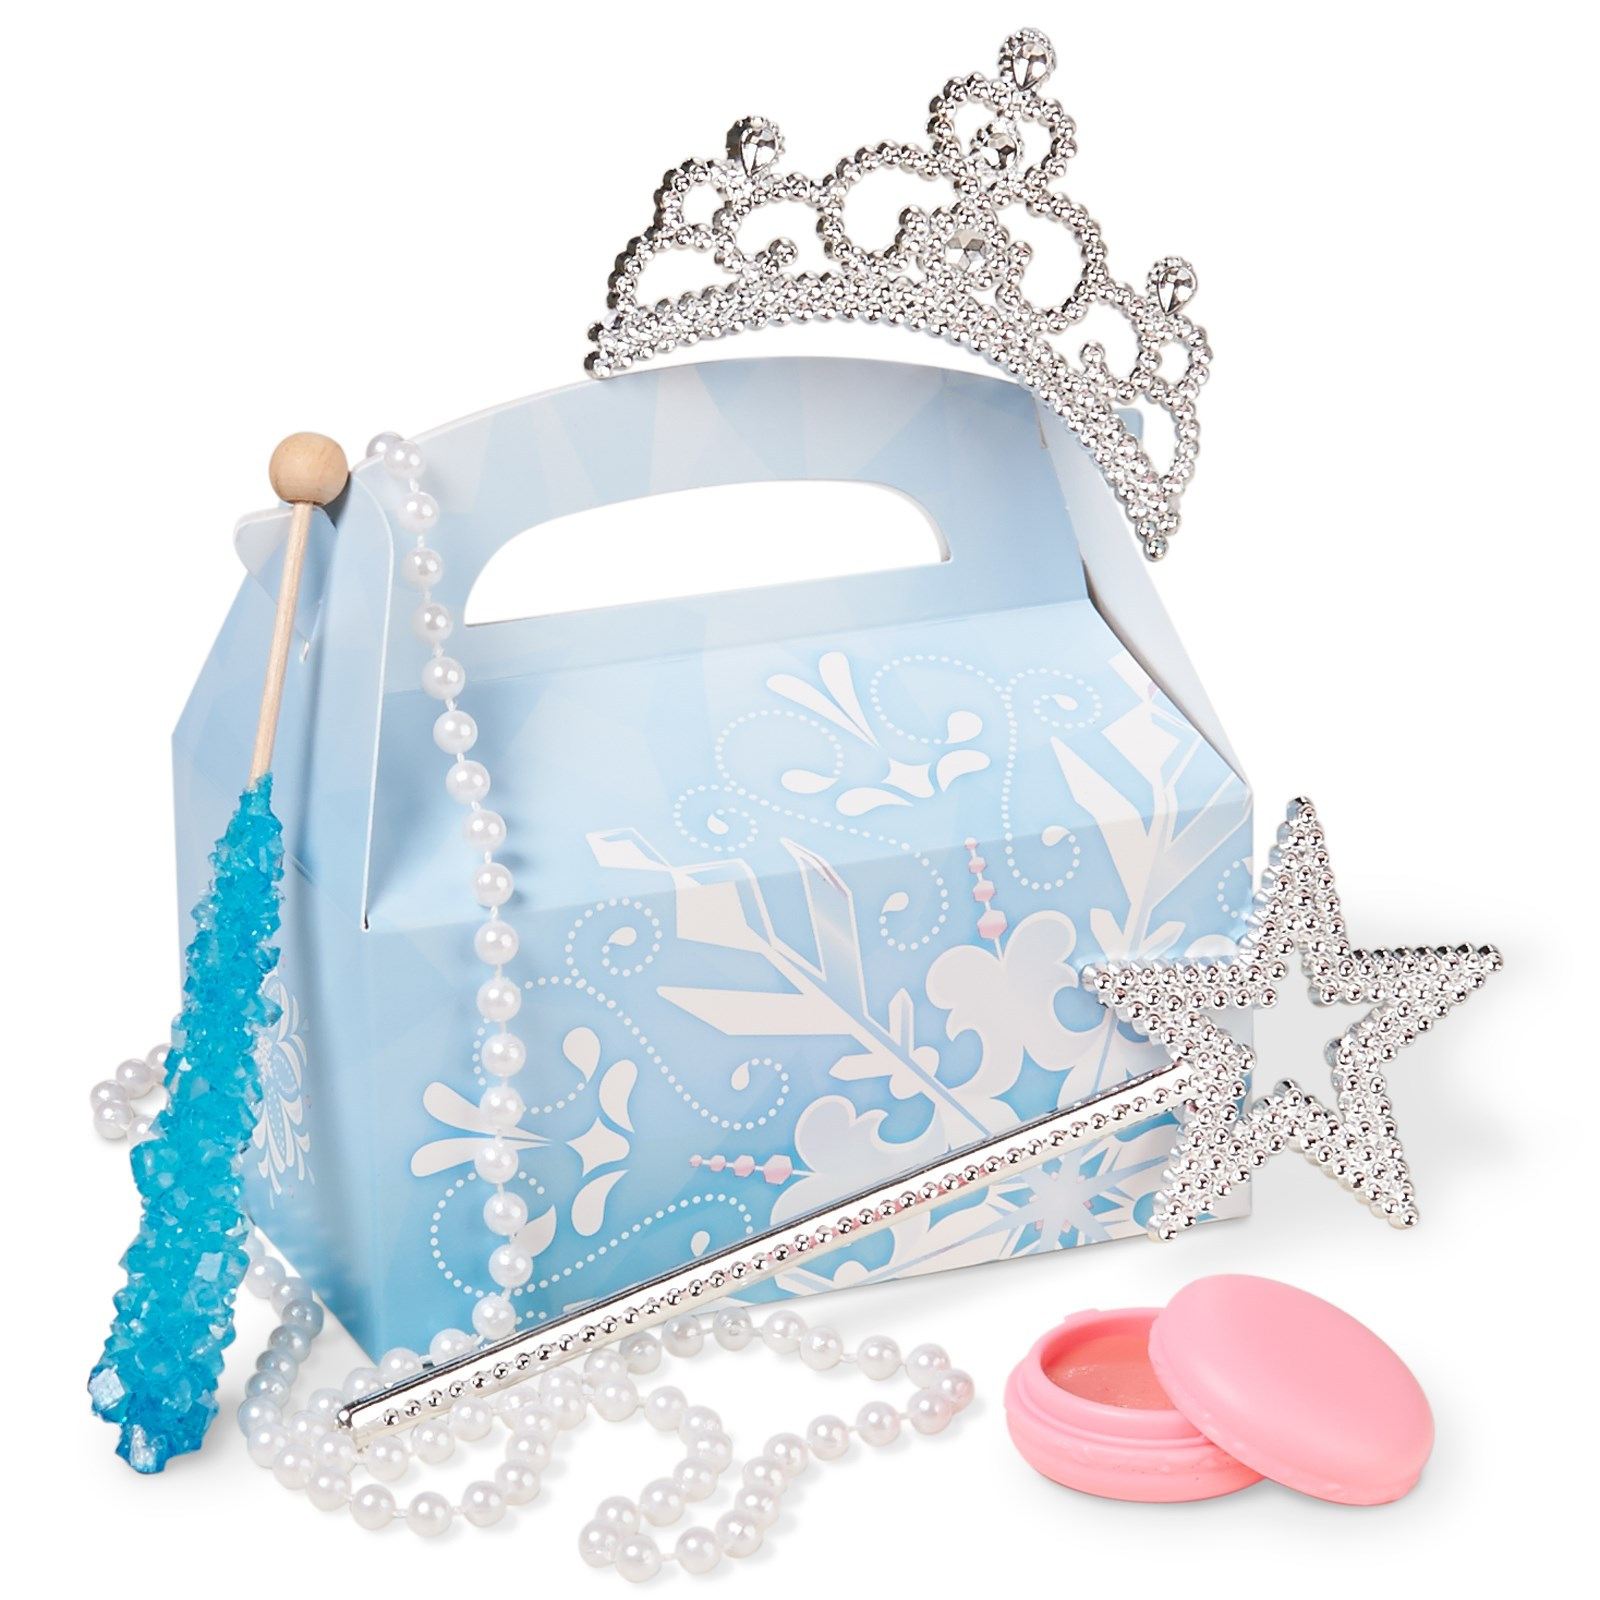 Snowflake Winter Wonderland Filled Party Favor Box